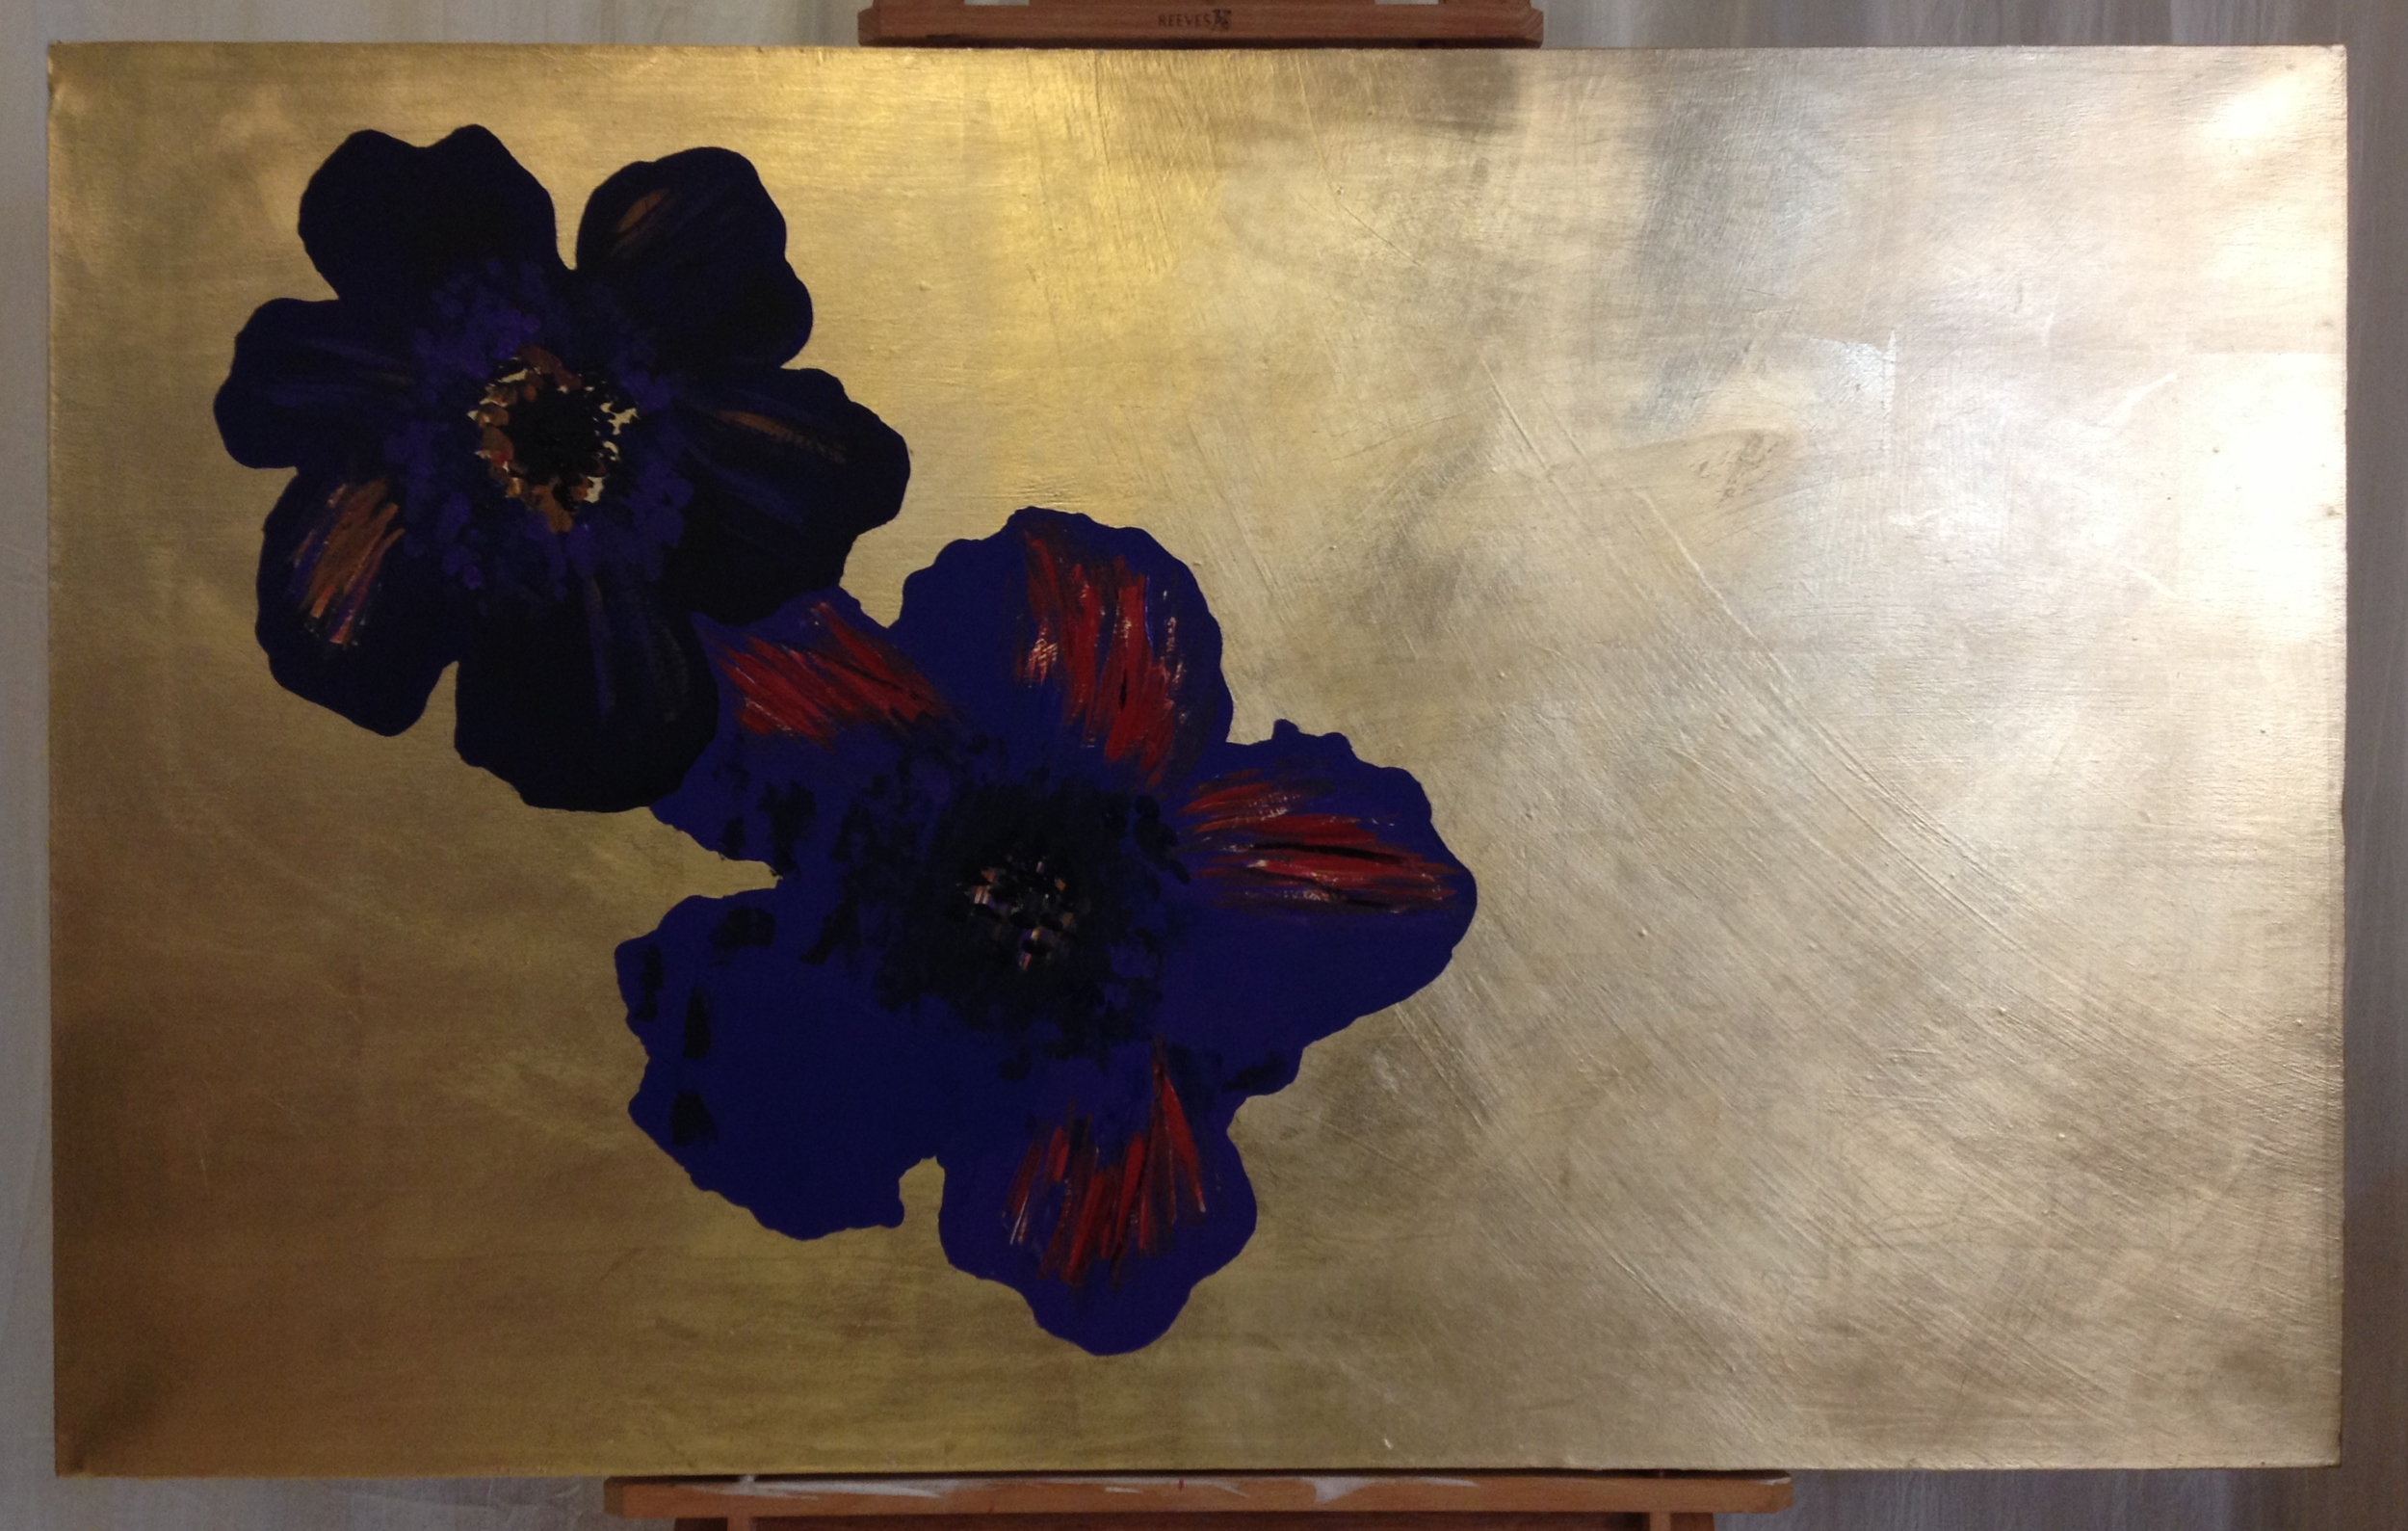 First, painting on the two blue flowers. Even though these will be largely covered over, I cant be certain precisely where, as placements can change as the piece is made. So I paint them in entirety, in detail.